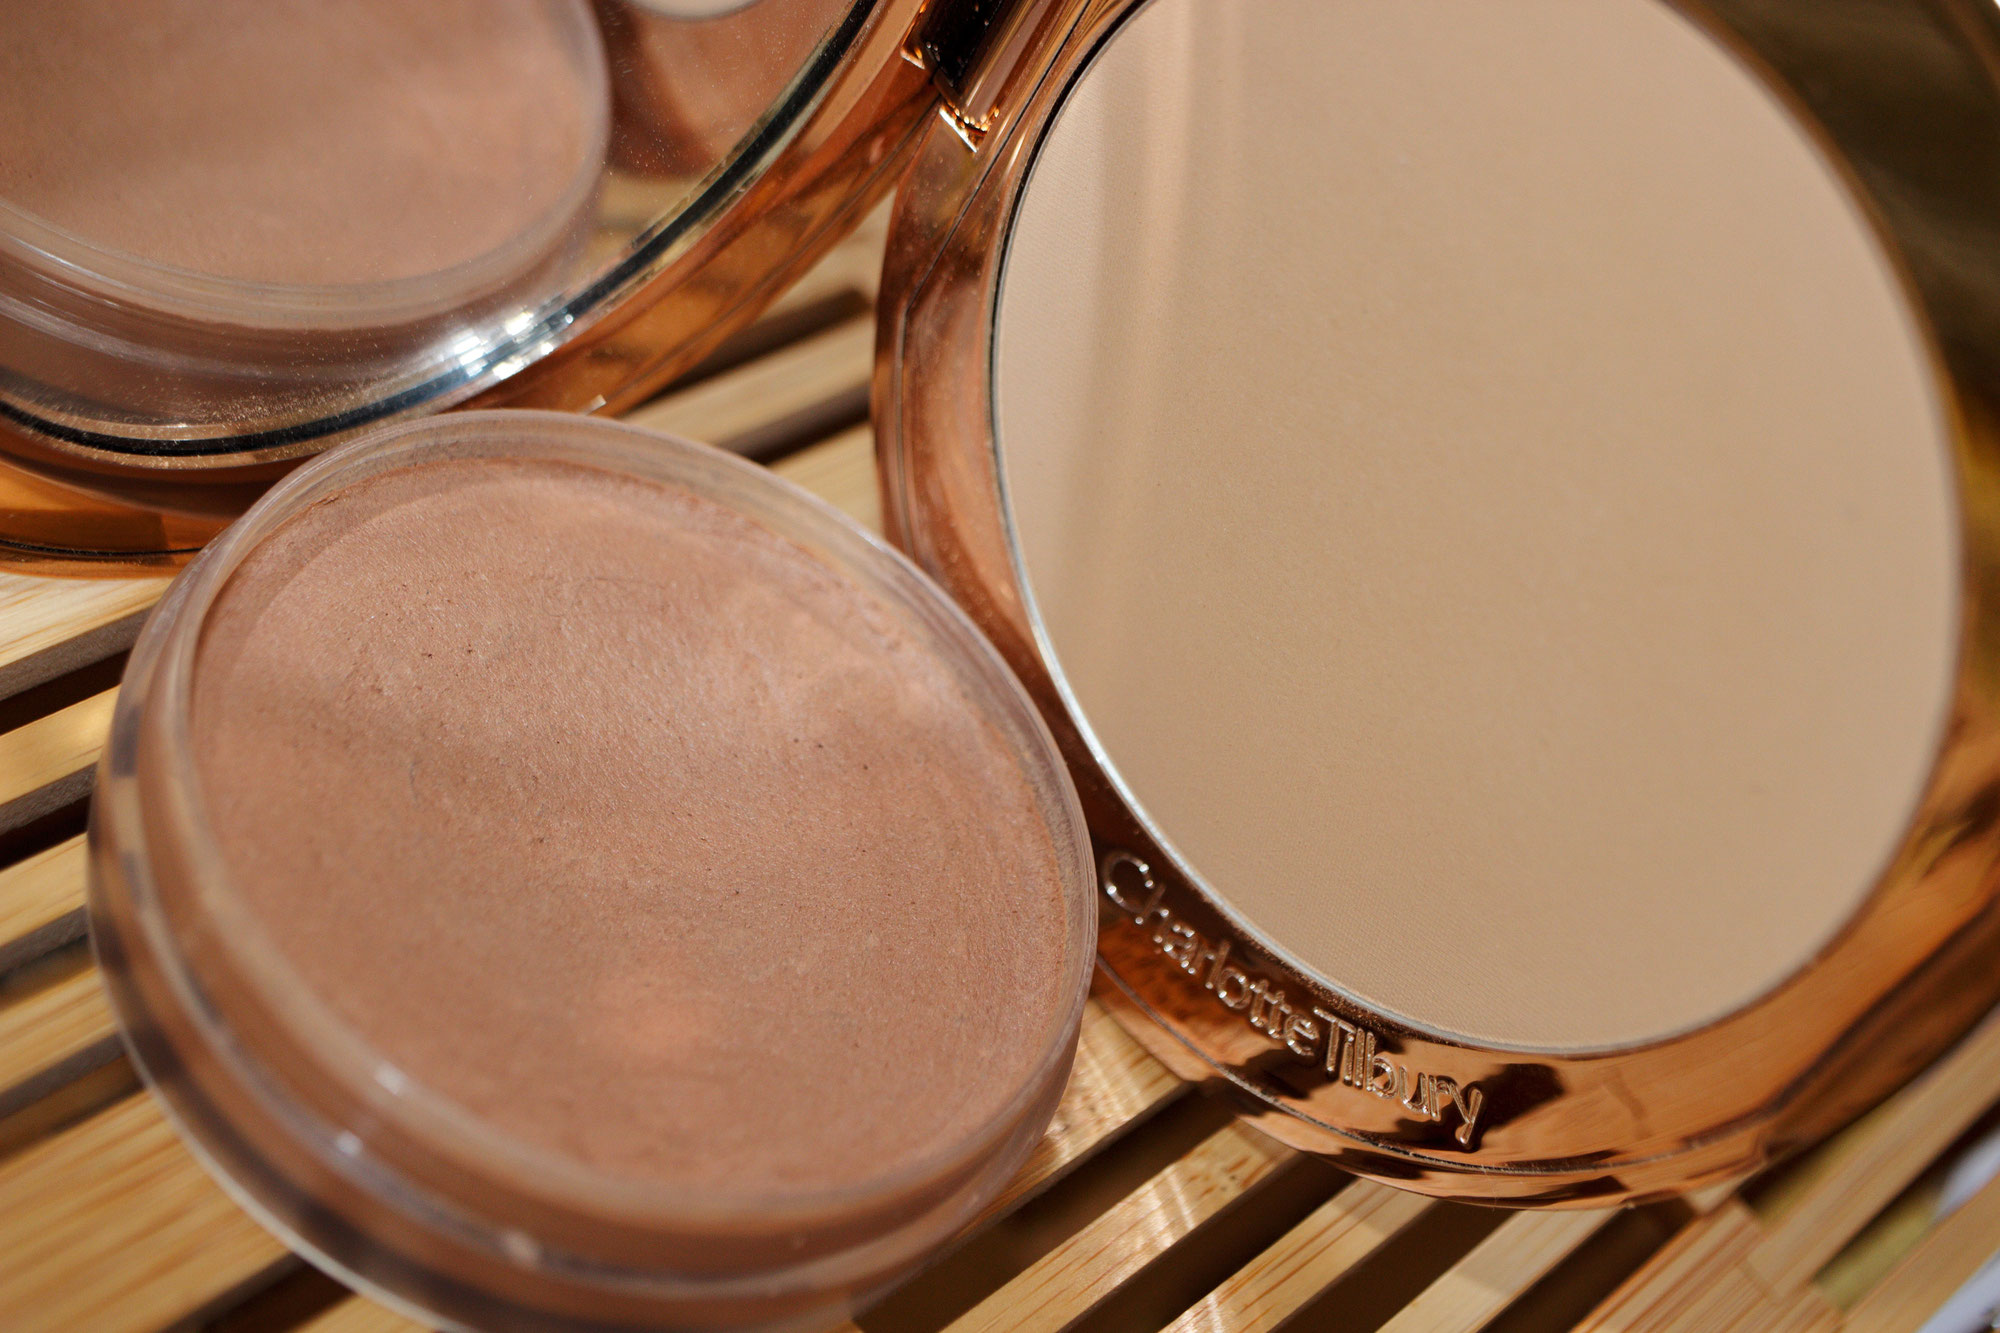 Warm layers: Bronzer Edit for fall/winter